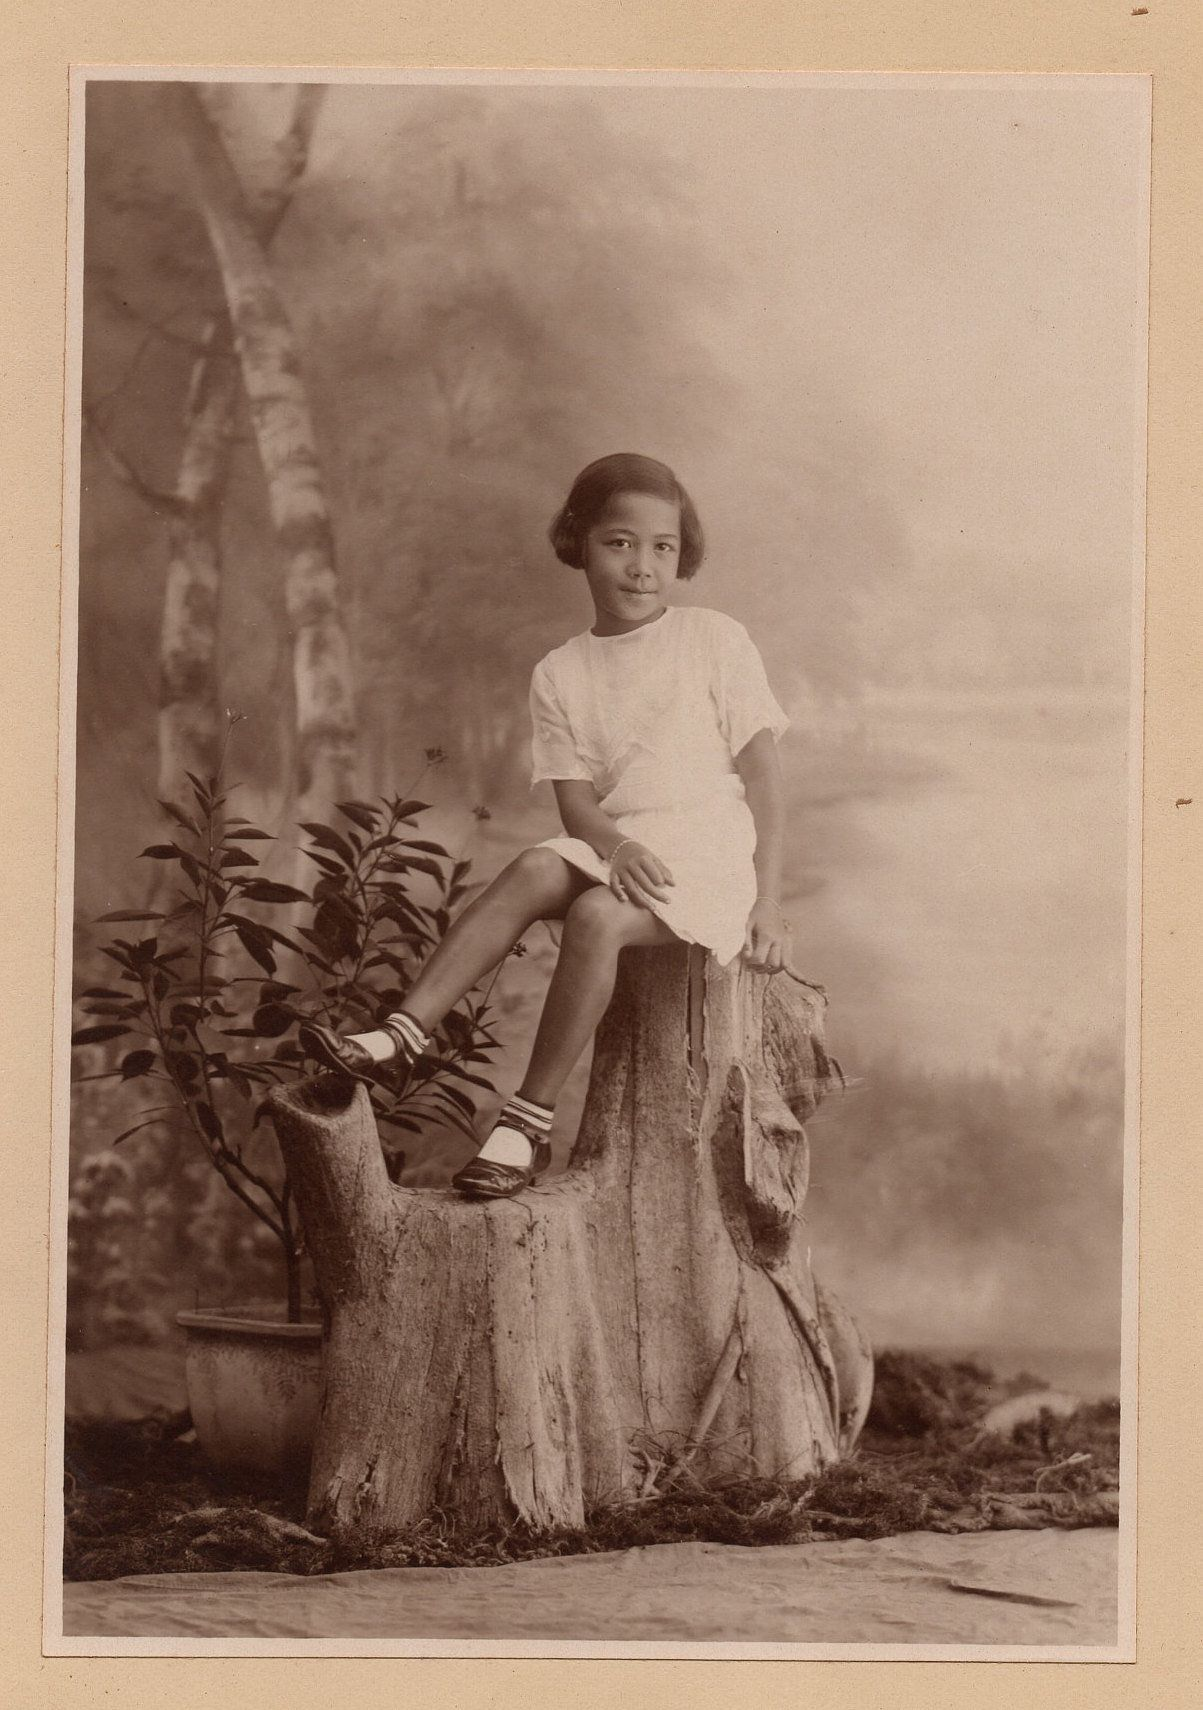 1920s Old Chinese Photo Black White Photograph Portrait Of A